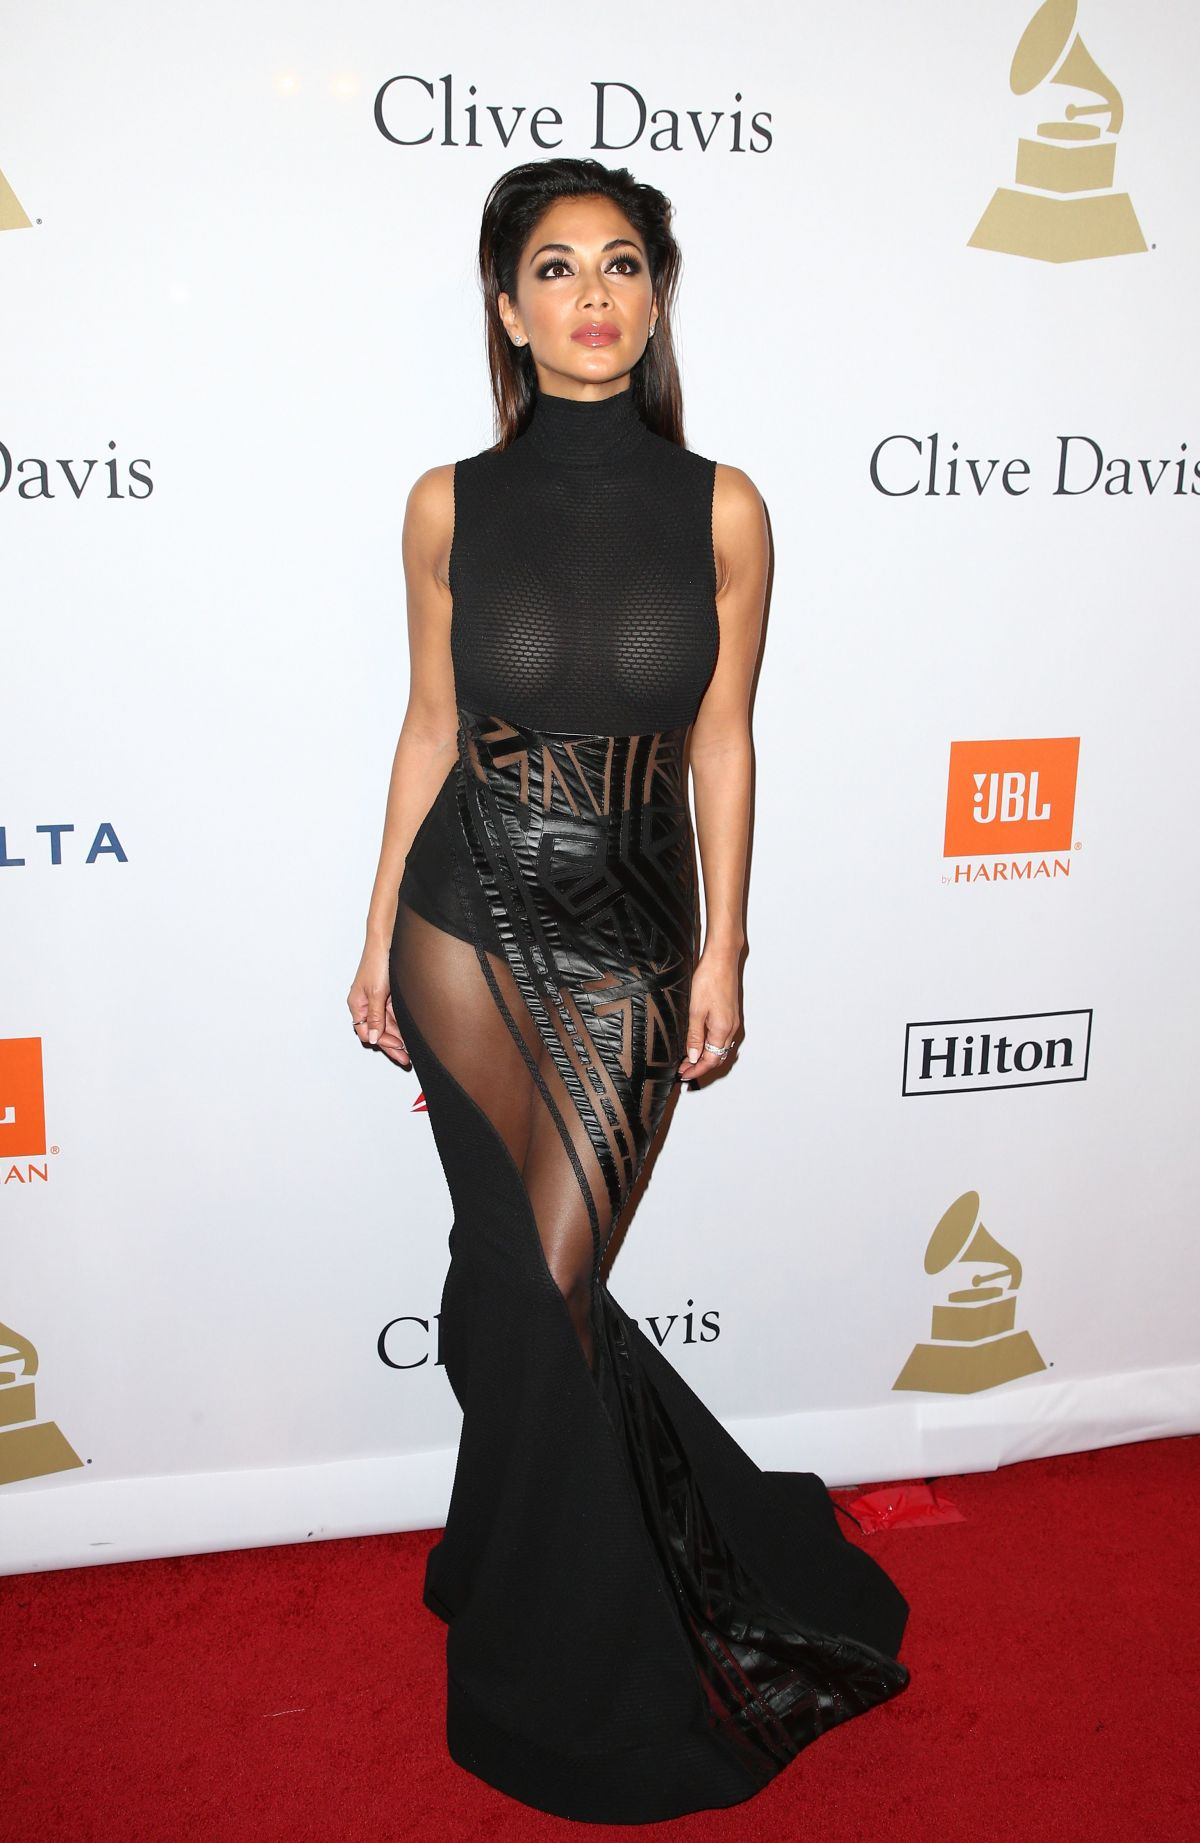 nicole-scherzinger-at-clive-davis-pre-grammy-party-in-los-angeles-02-11-2017_1.jpg